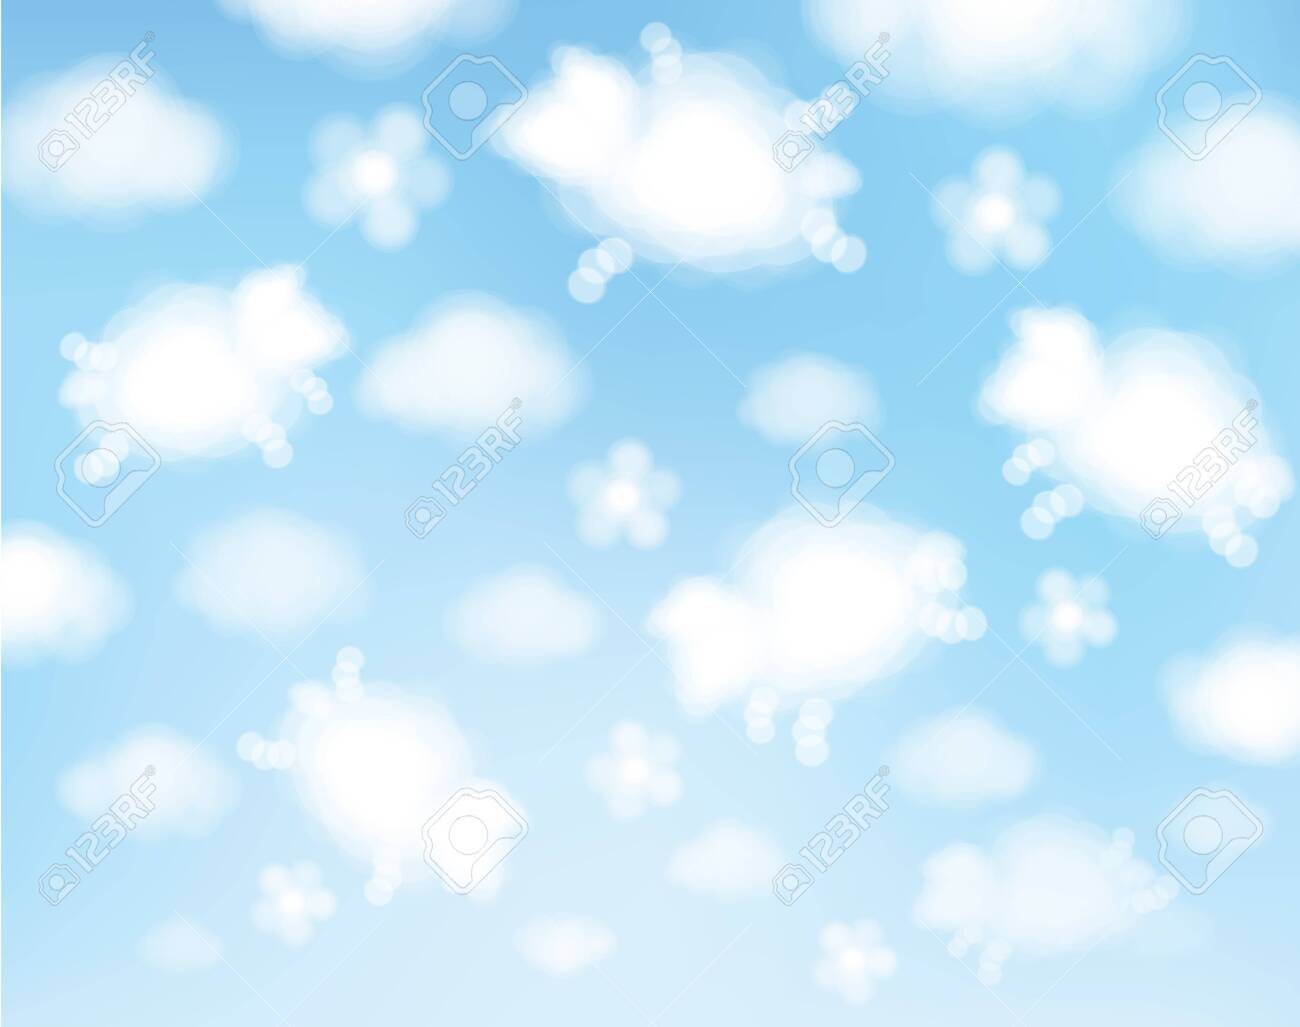 Vector blue sky background. Cute, abstract, sheeps clouds cartoons. - 145688143